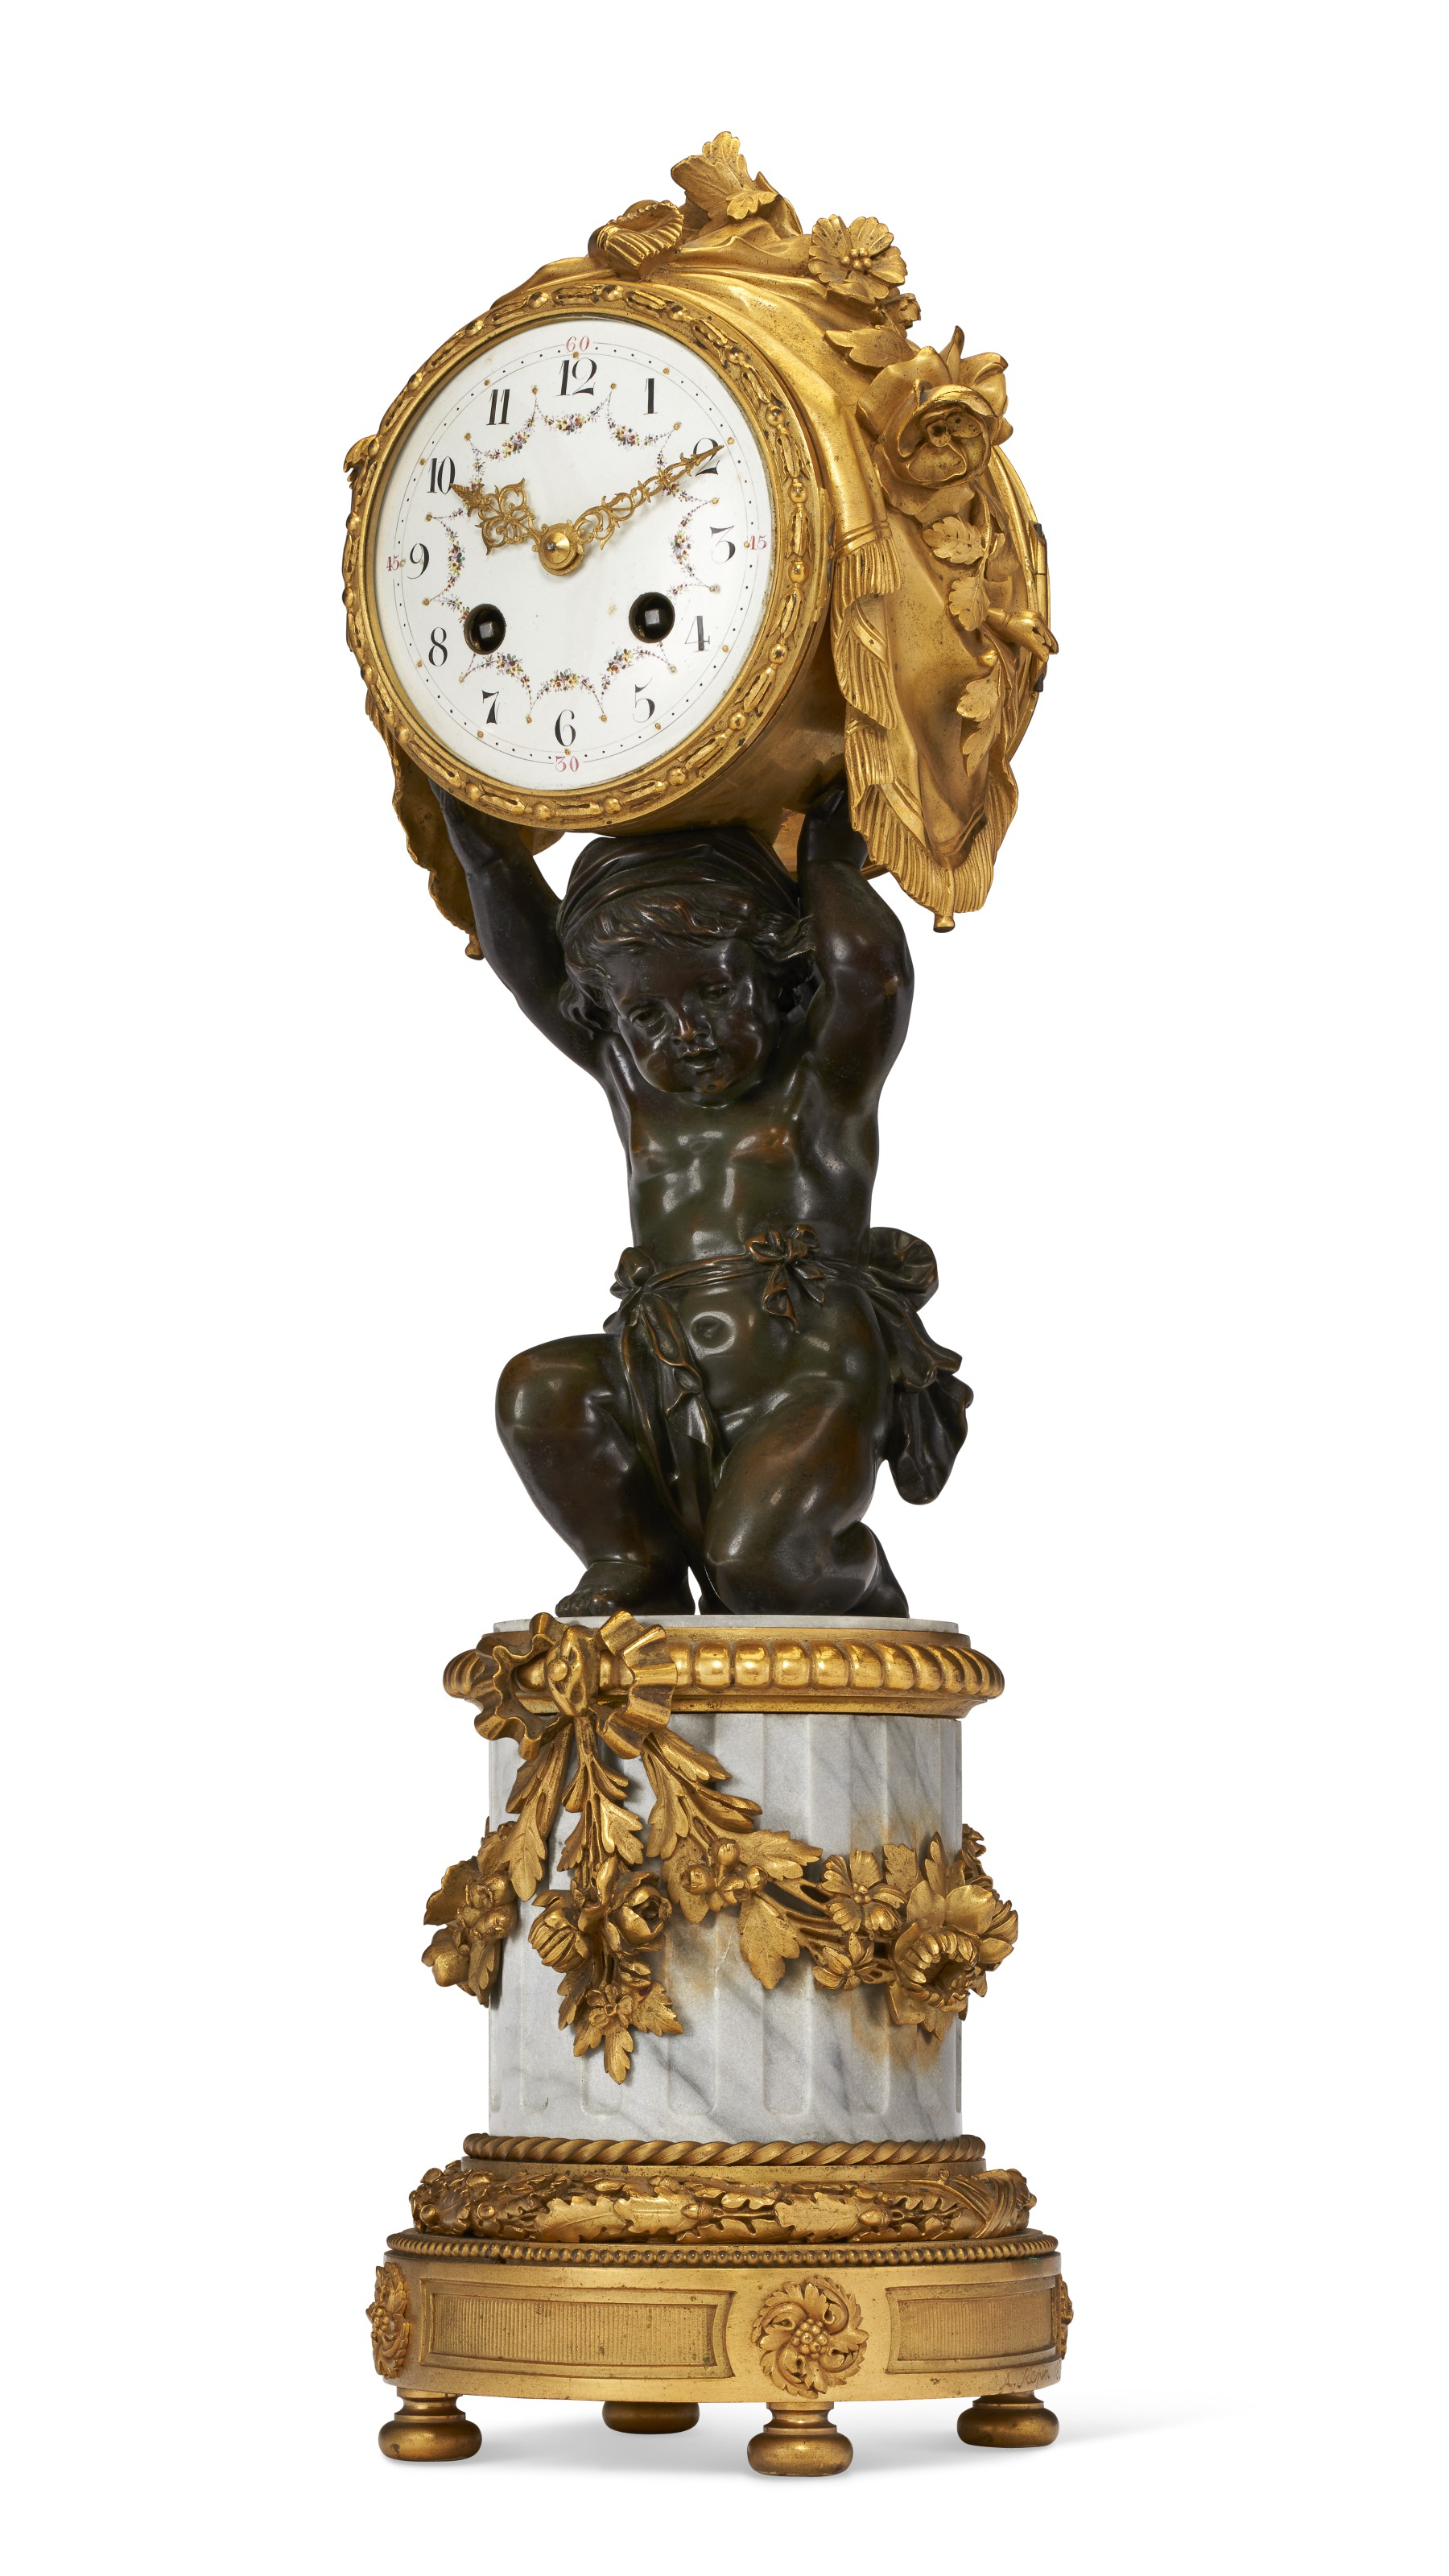 A French ormolu, patinated bronze and bleu turquin marble figural clock, signed A. Rapin, Paris, dated 1889. 18¼  in (46.4  cm) high. Estimate $5,000-8,000. Offered in The Collector English & European Furniture, Ceramics, Silver & Works of Art on 5-20 October 2021 at Christie's Online